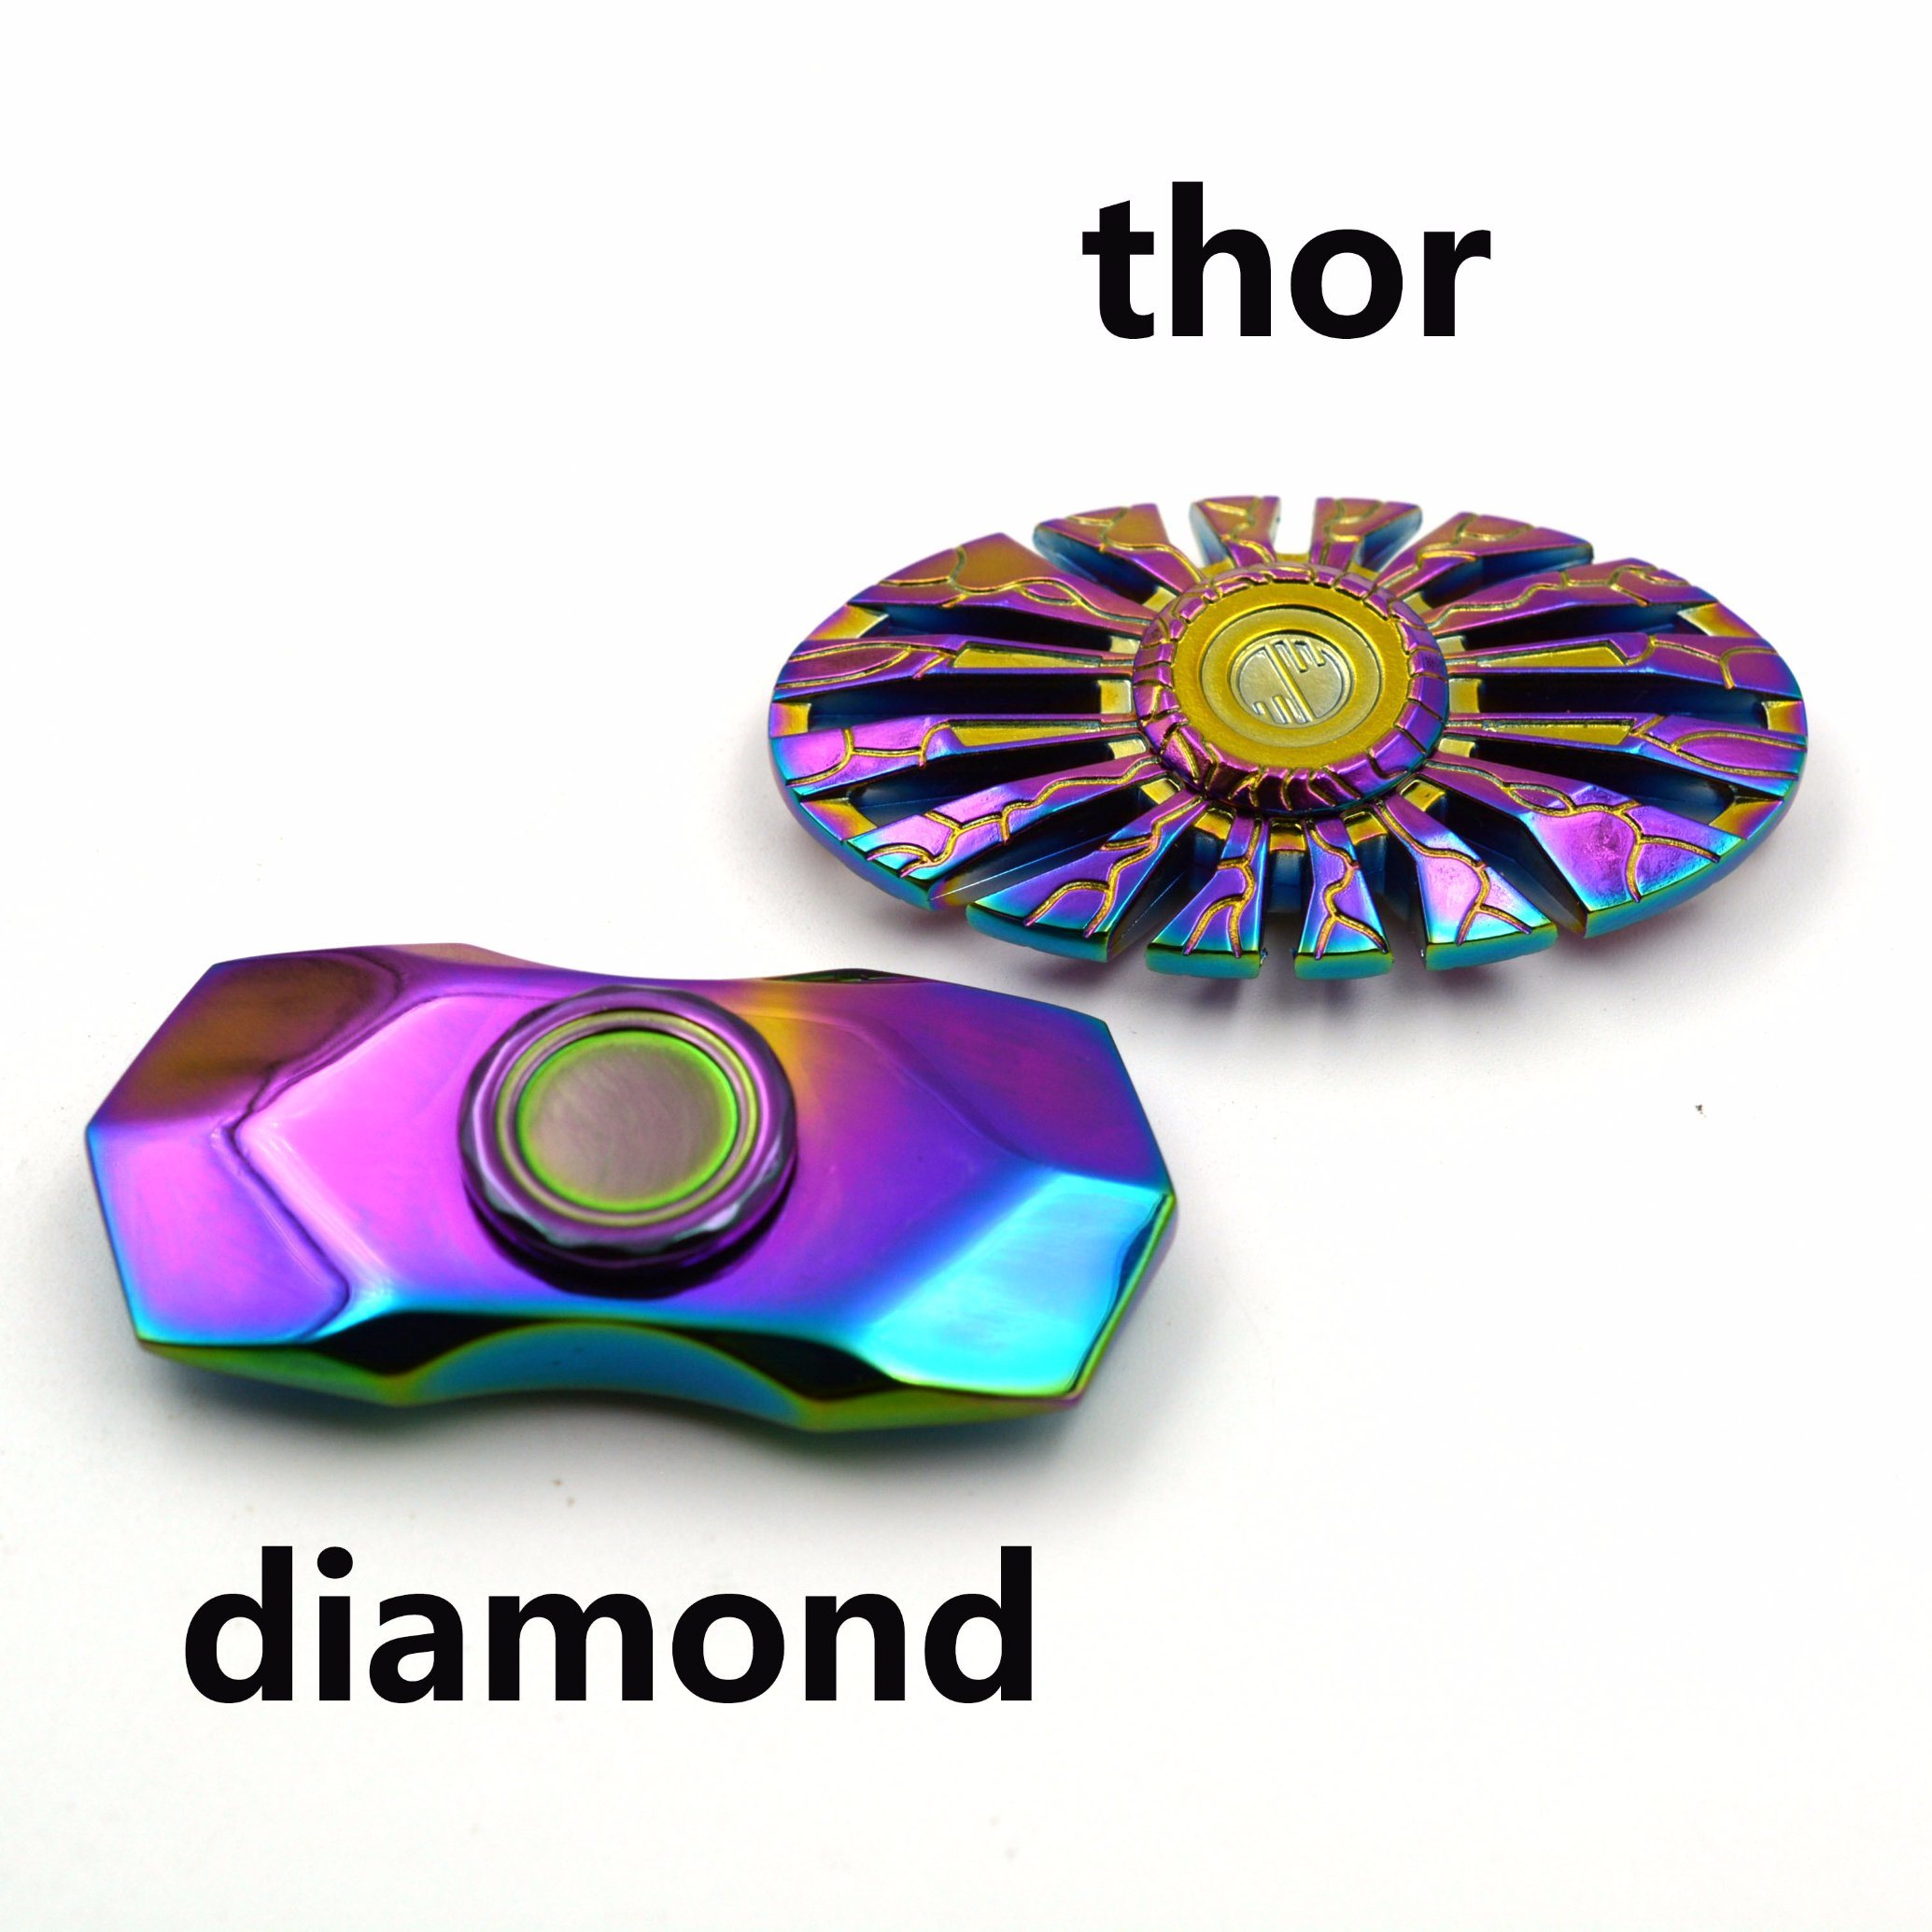 Rainbow Thor Design Metal Fidget Spinners